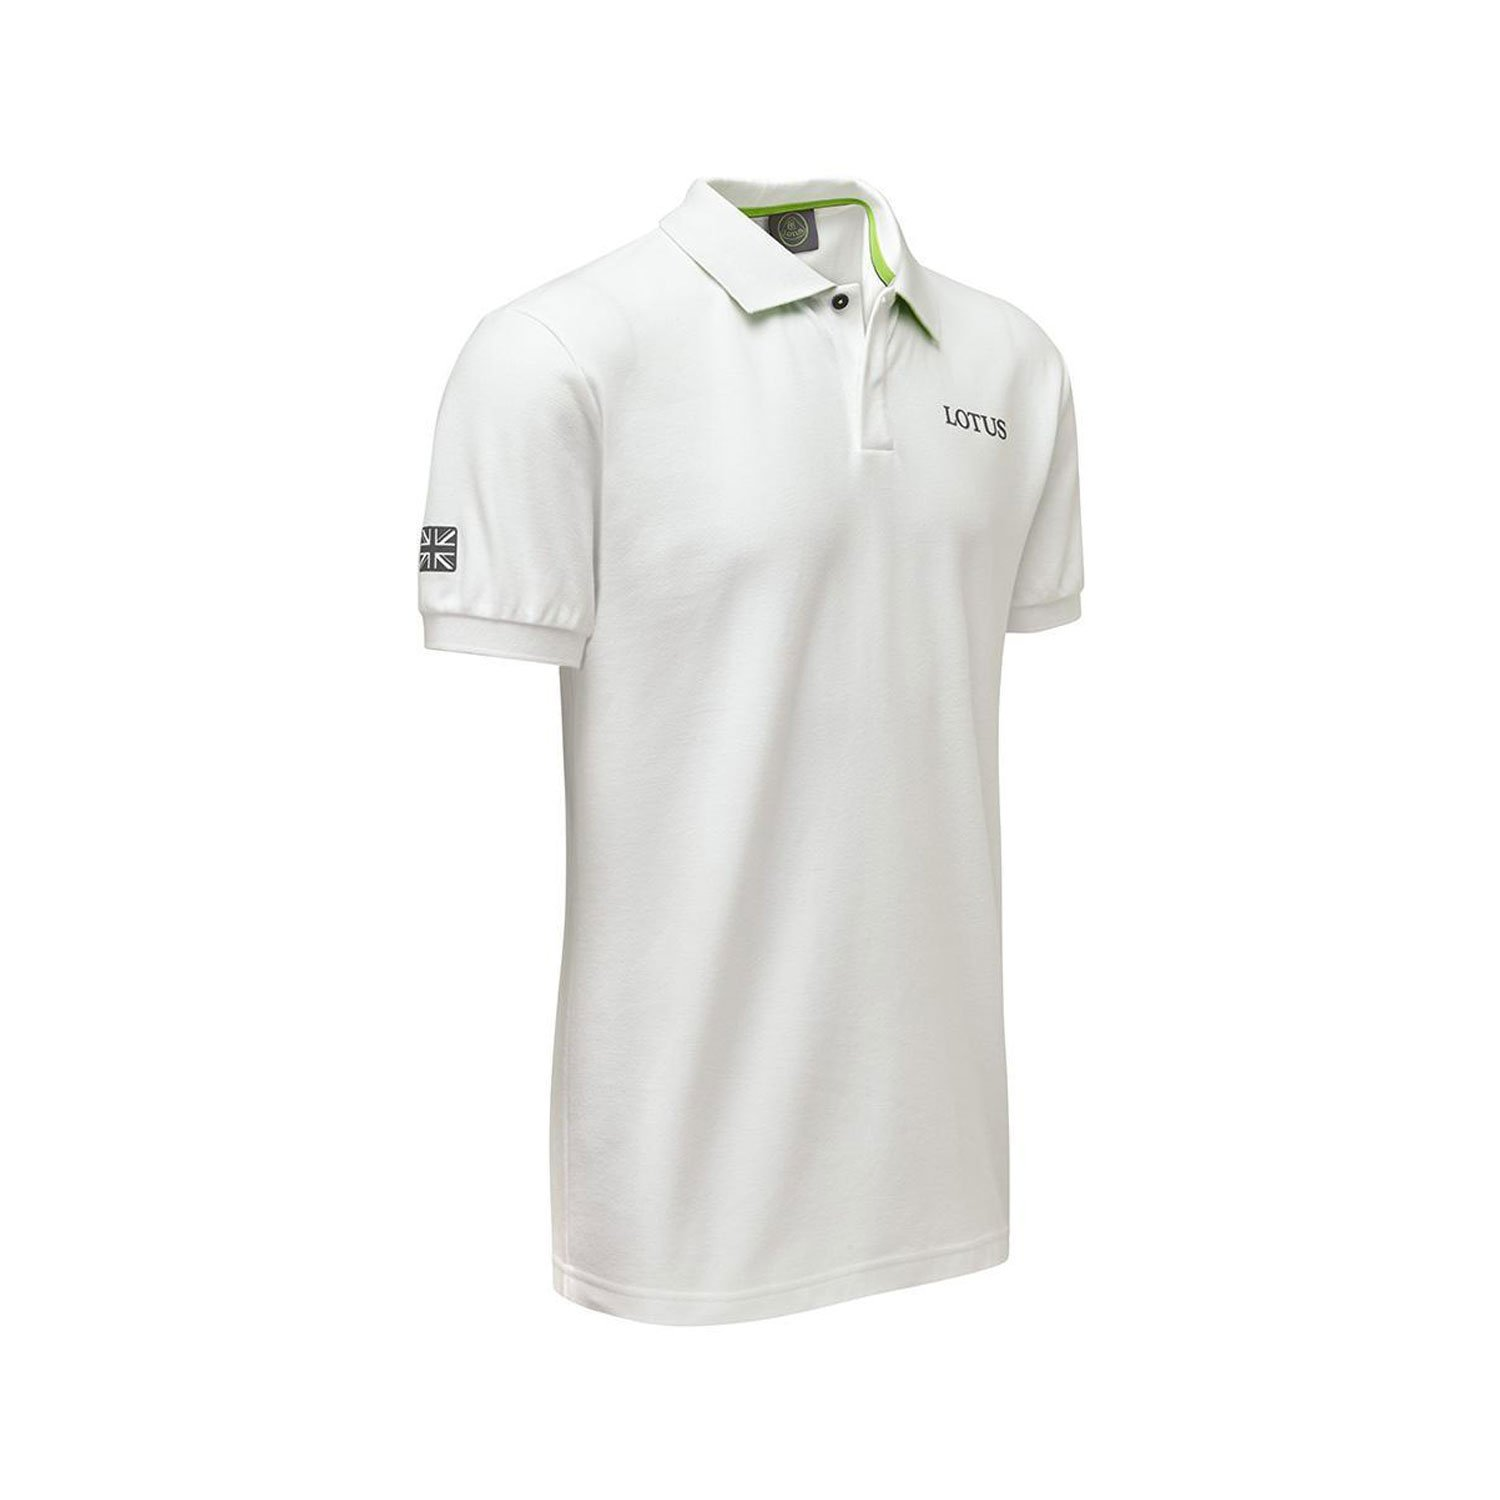 ae3f7084d Design Polo Shirts Online Uk - DREAMWORKS